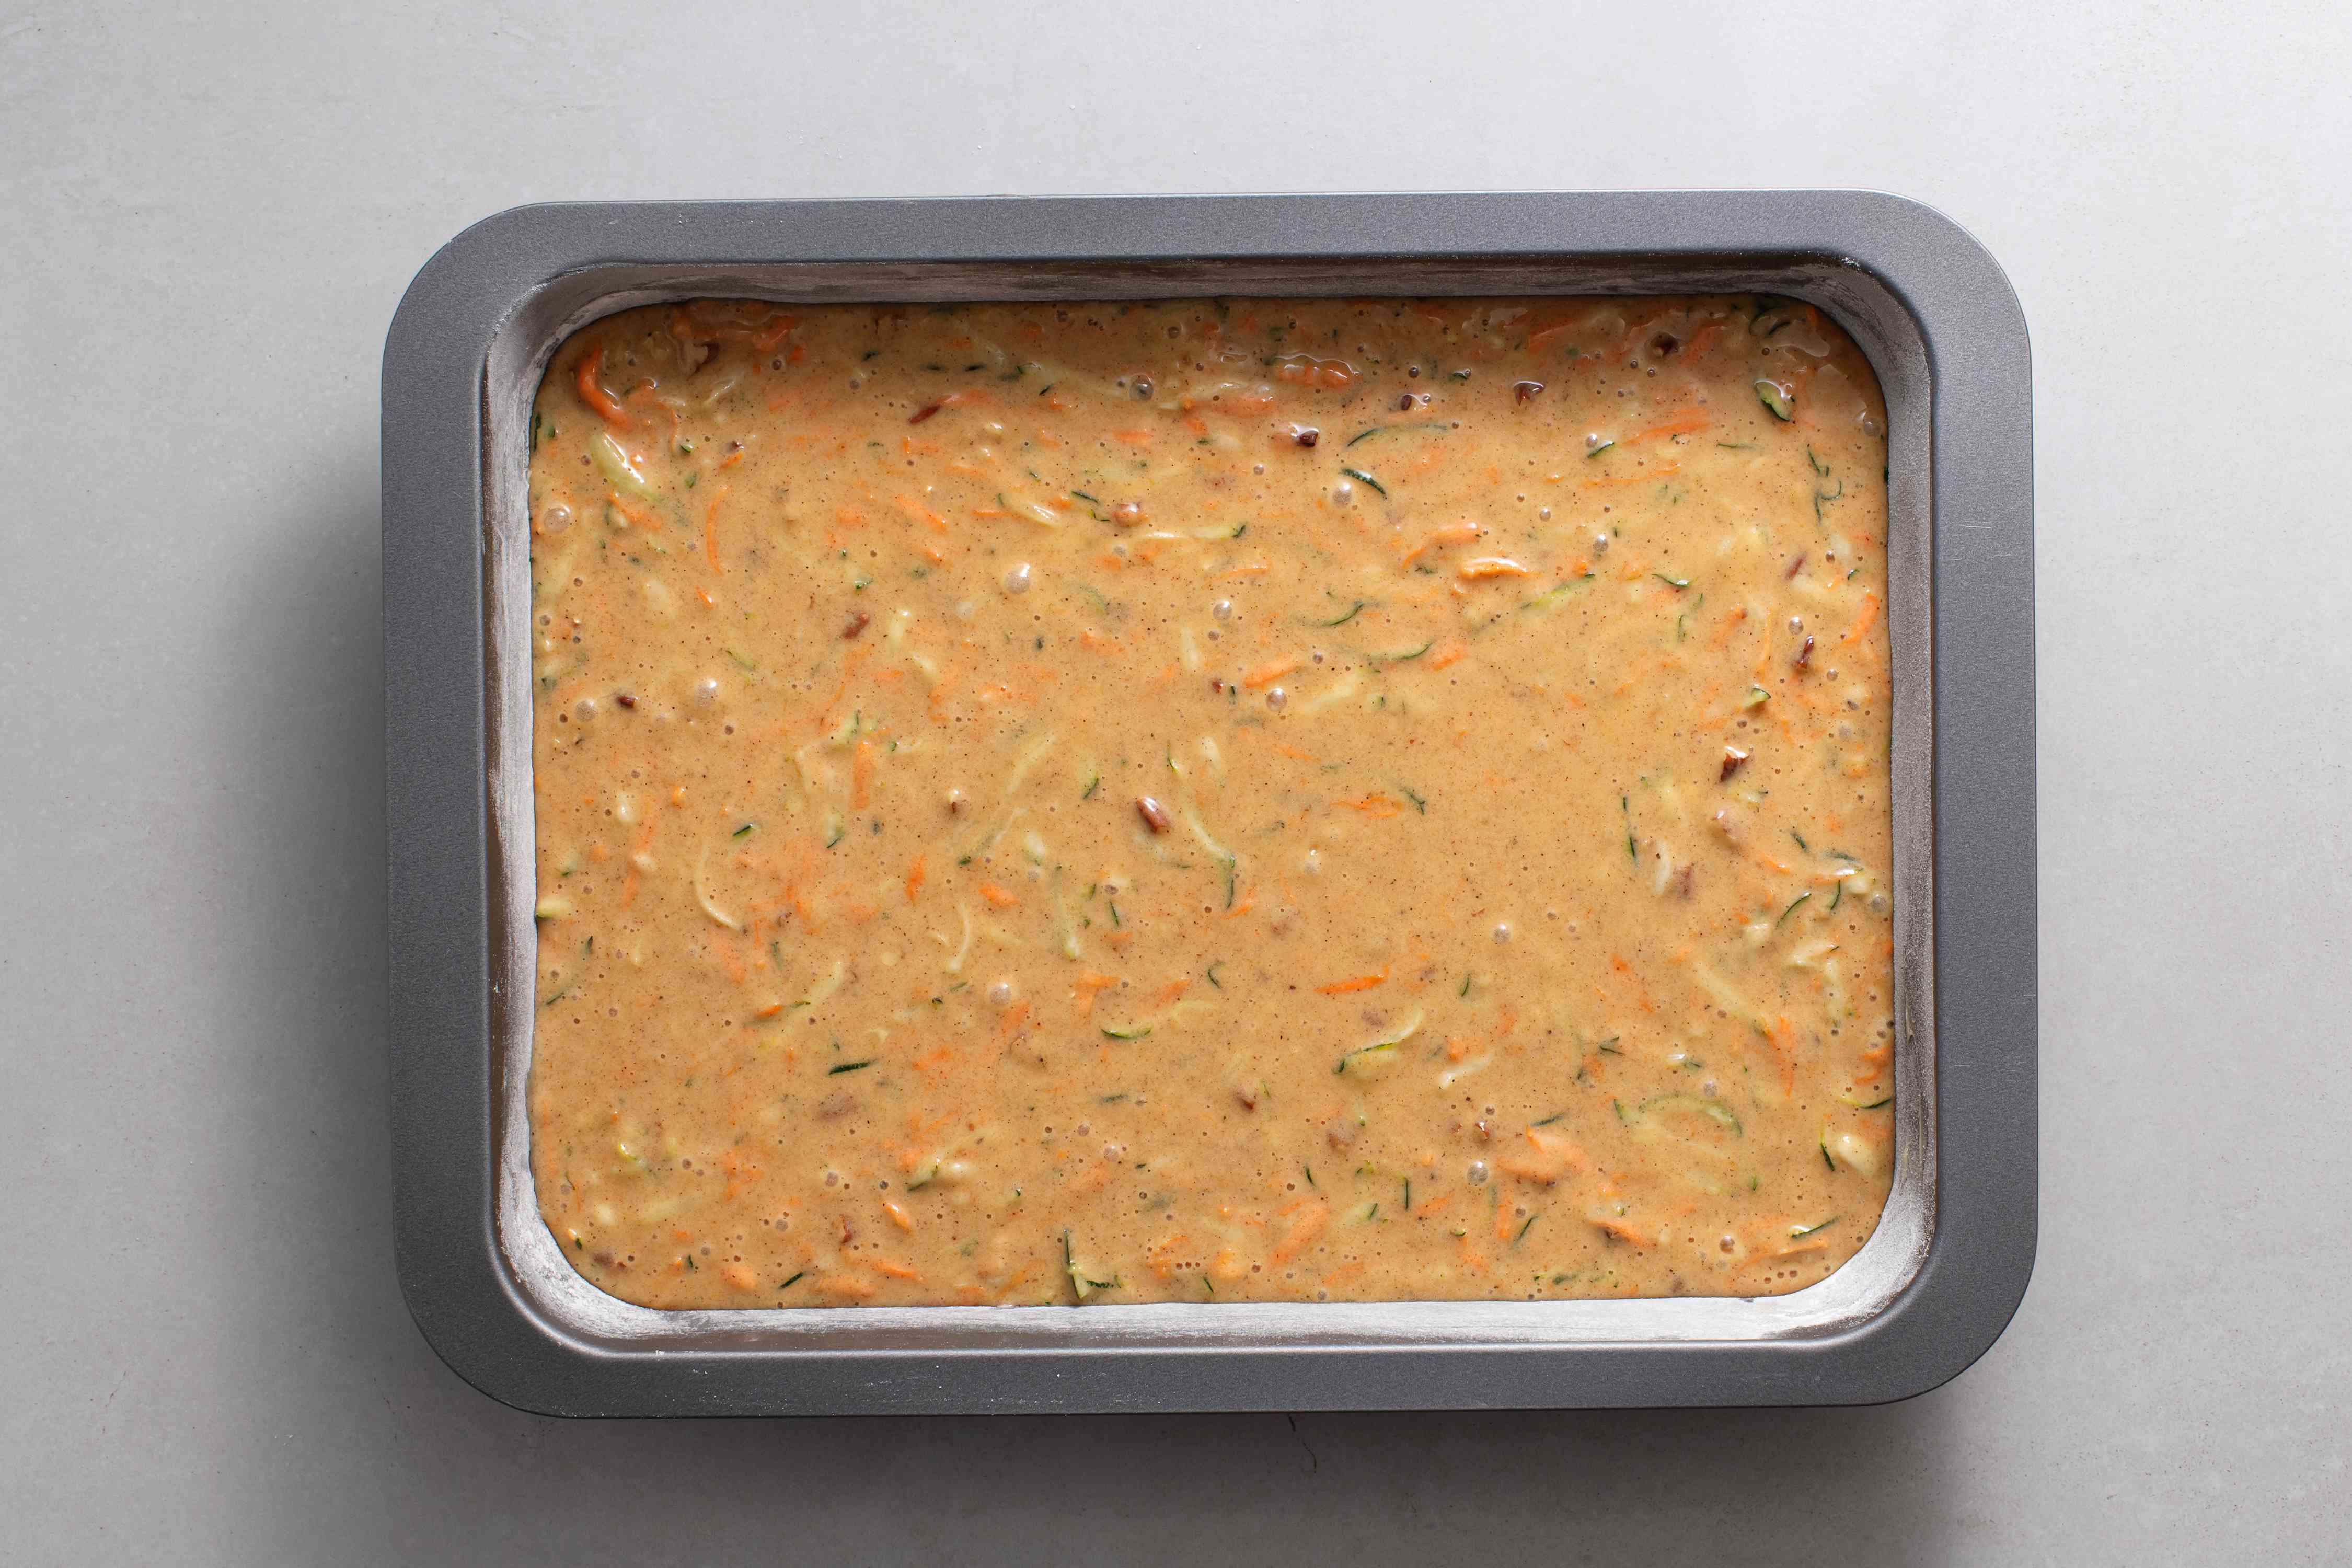 Spread the cake batter in the prepared baking pan